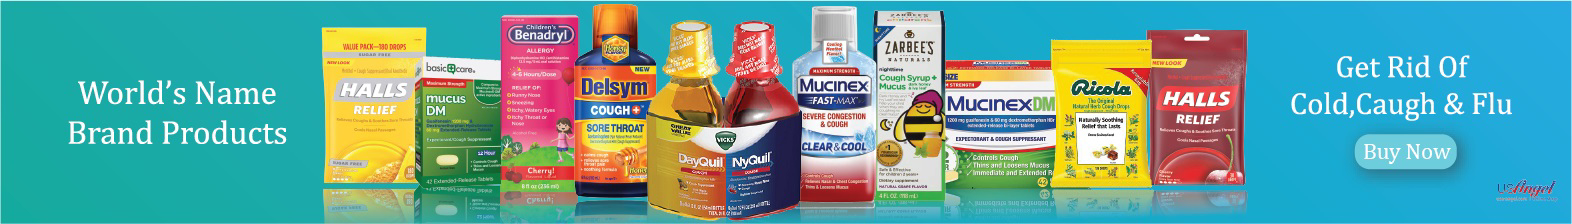 Get Rid Of Cold Caugh & Flu Cold cough and Flu Relief Medicine